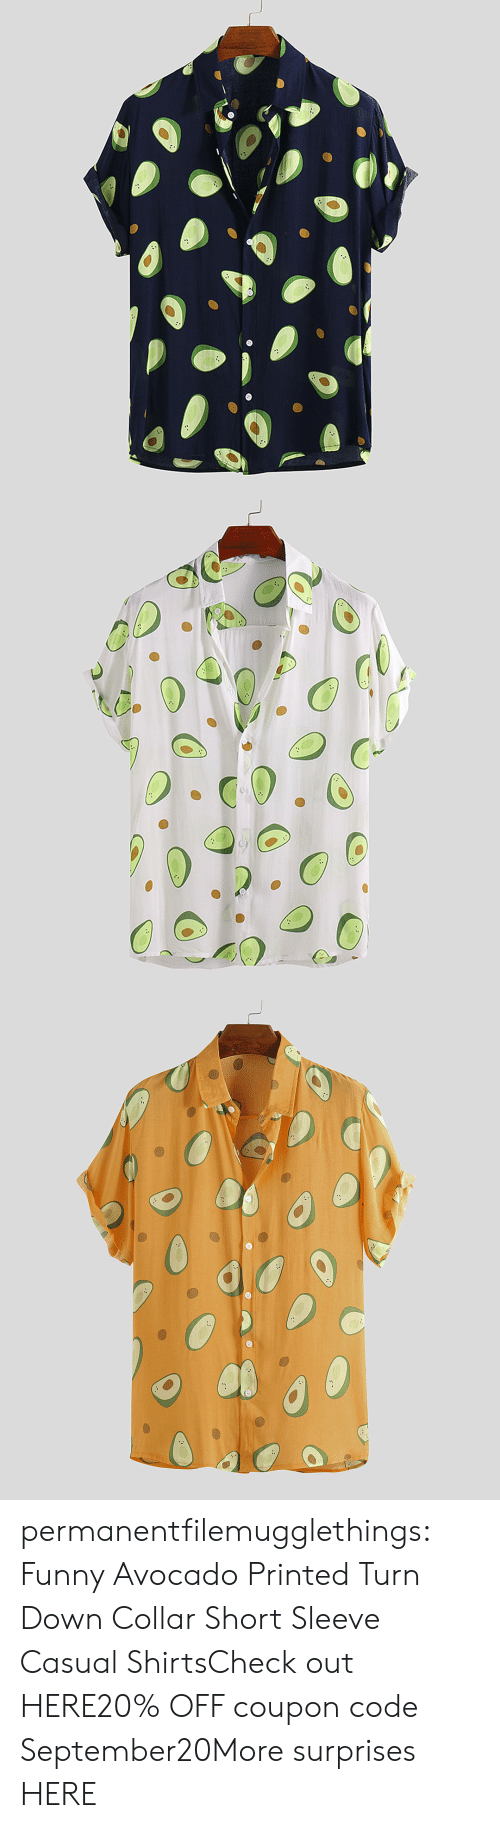 Printed: permanentfilemugglethings:  Funny Avocado Printed Turn Down Collar Short Sleeve Casual ShirtsCheck out HERE20% OFF coupon code:September20More surprises HERE